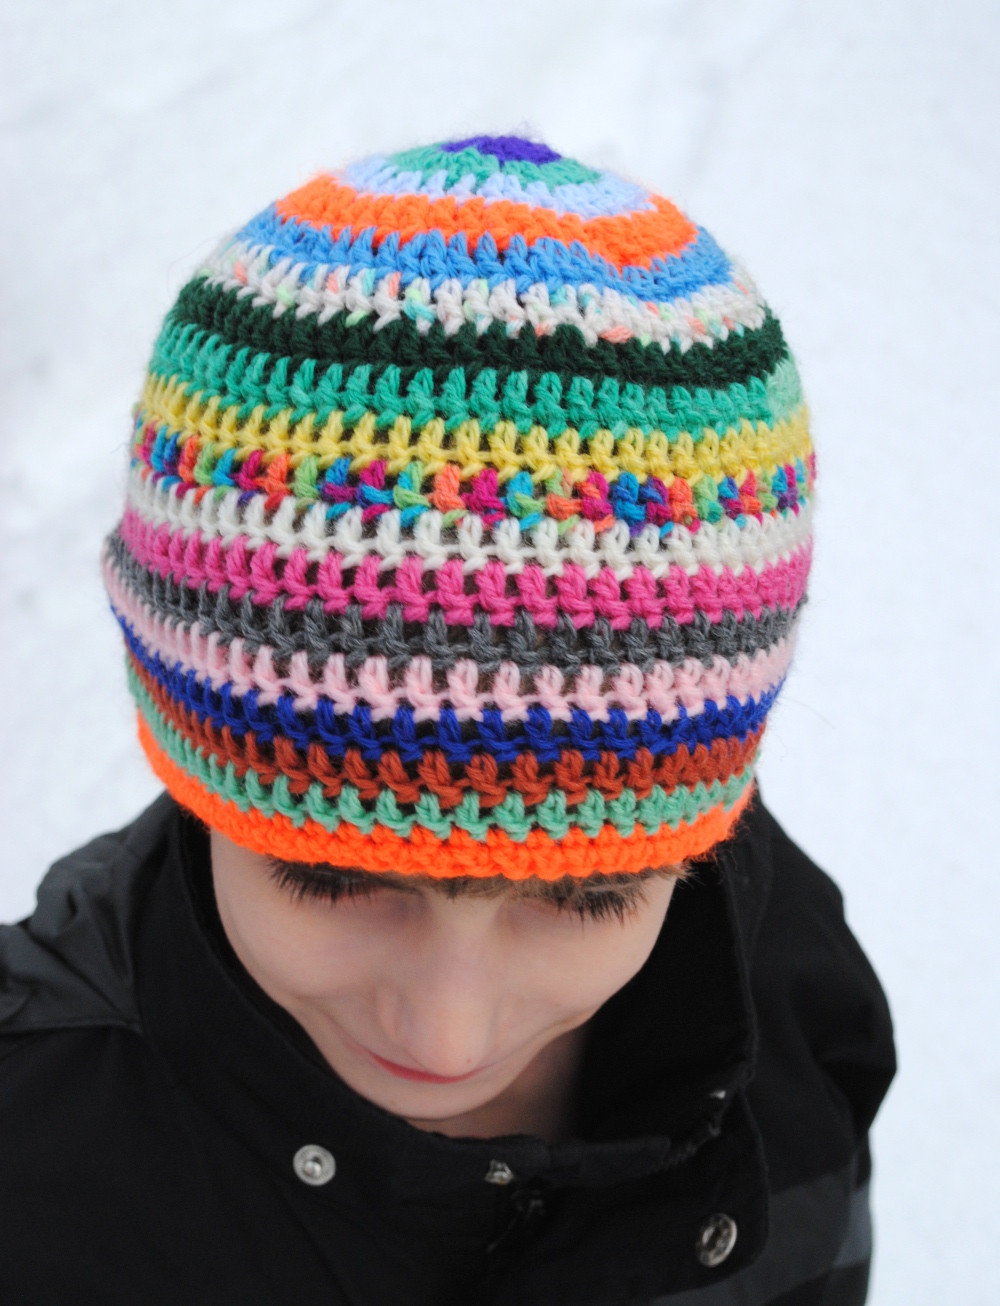 Lovely Crochet Patterns for Hats Free Easy Crochet and Knit Simple Crochet Hat Patterns Of Attractive 42 Photos Simple Crochet Hat Patterns